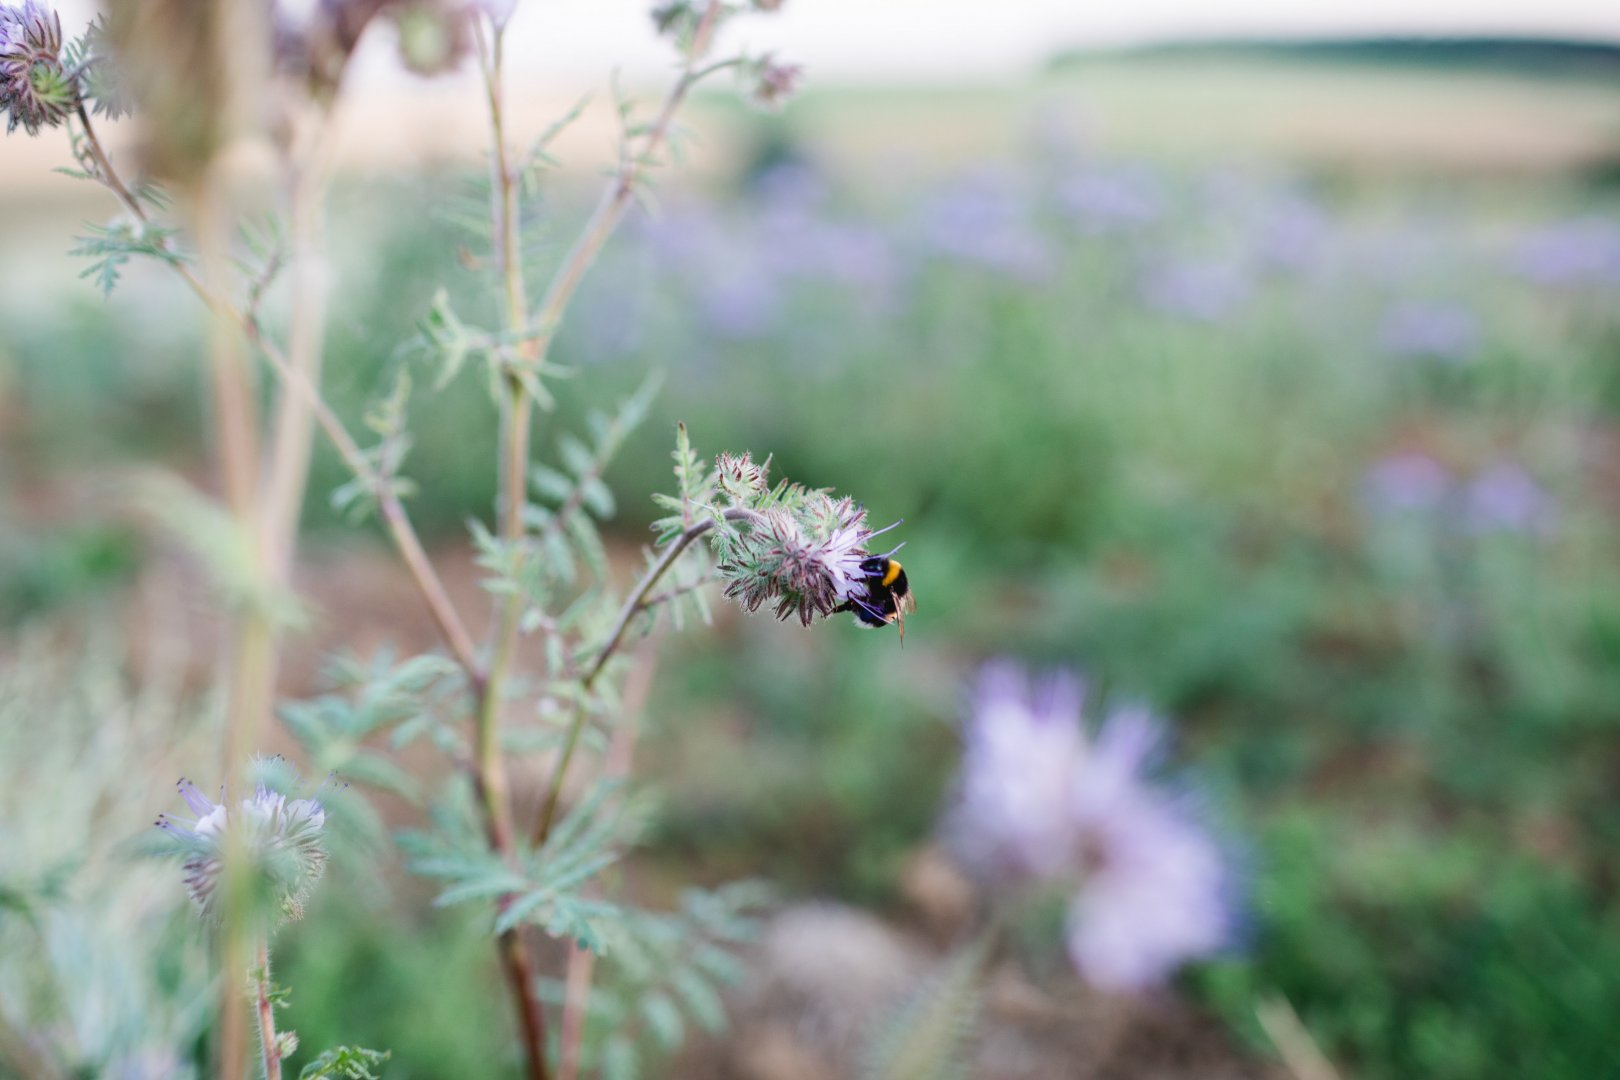 Flower Plant Bumblebee Grass Honeybee Flowering plant Membrane-winged insect Bee Spring Insect Wildflower Pollinator Wildlife Pollen Forb Plant stem Ironweed